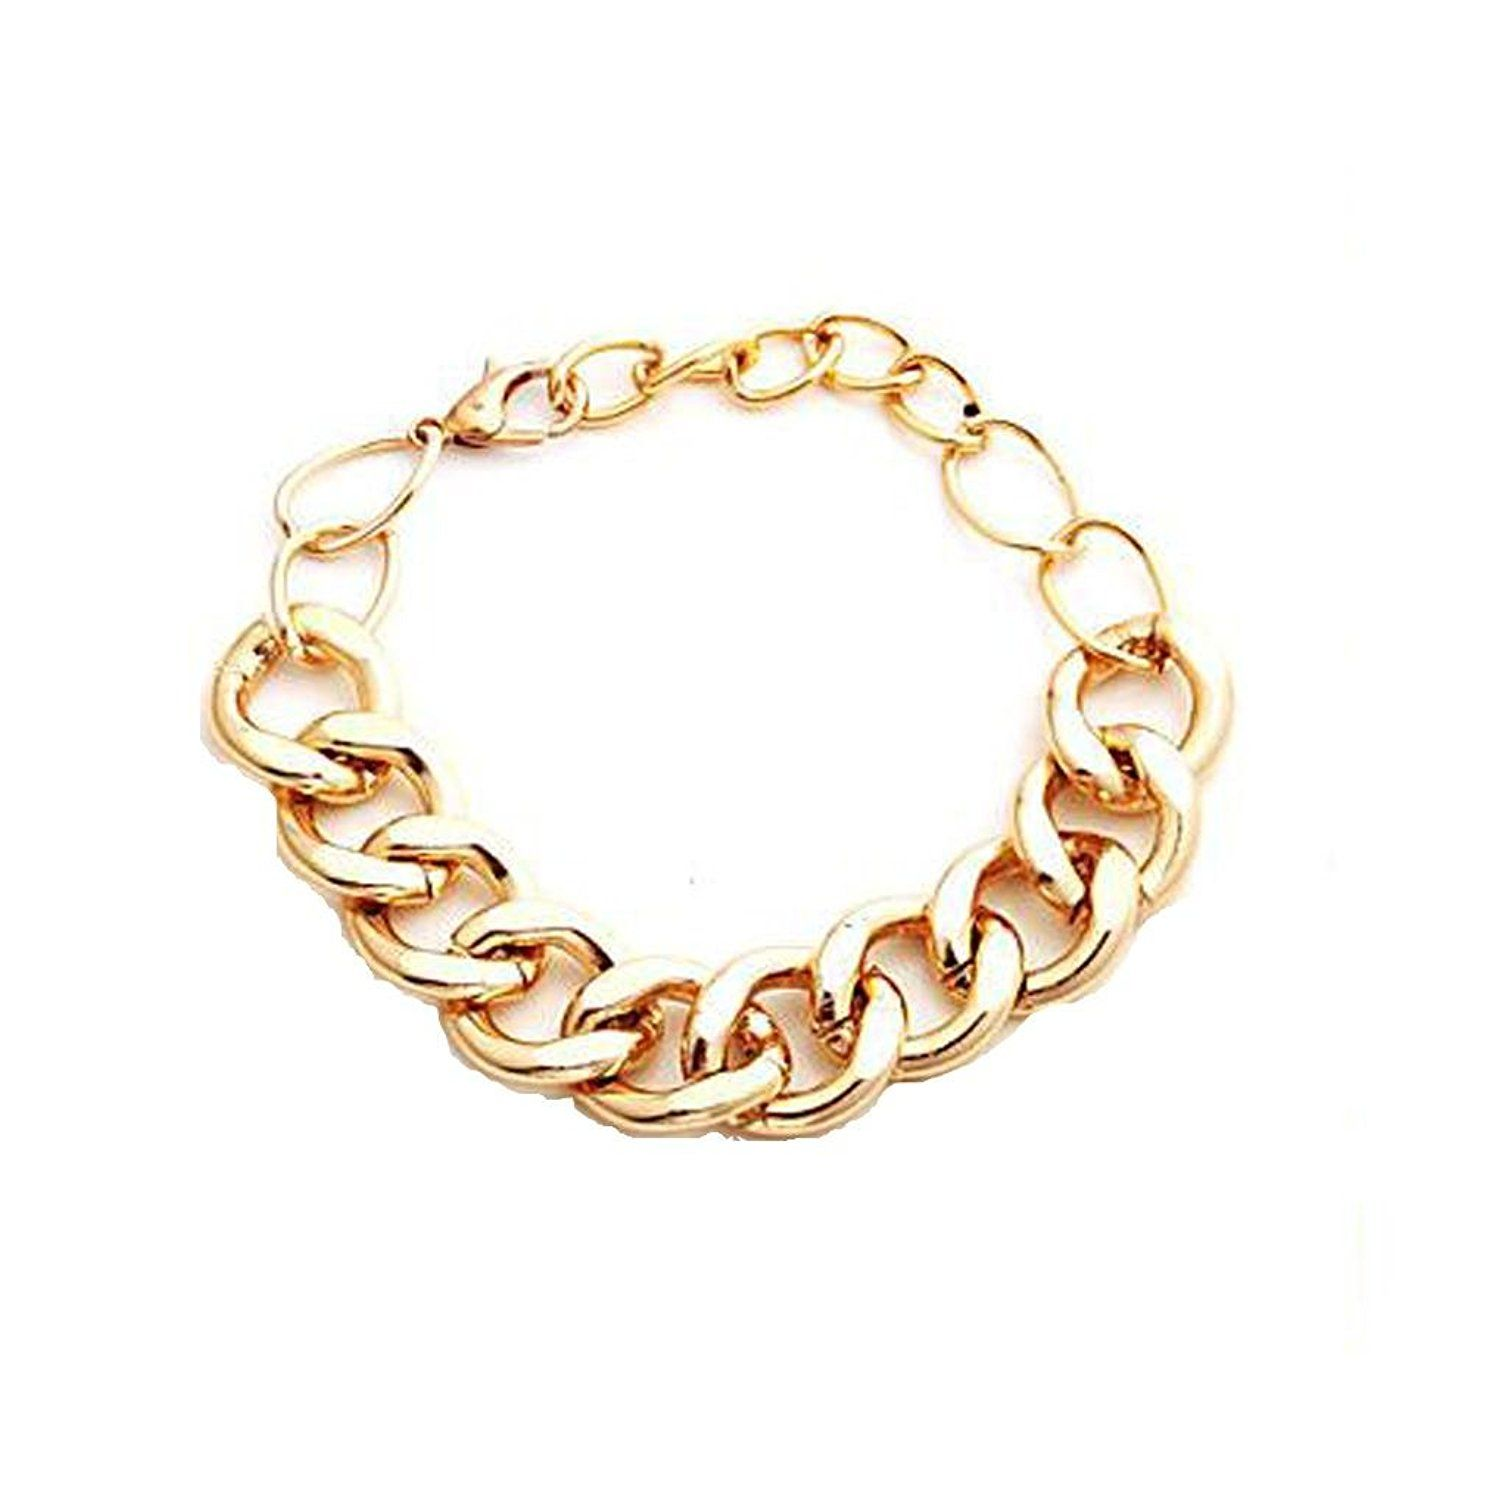 bracelet steel paved gold rose terse store anklet bracelets plated crystal chain product charm stainless ankle cool link